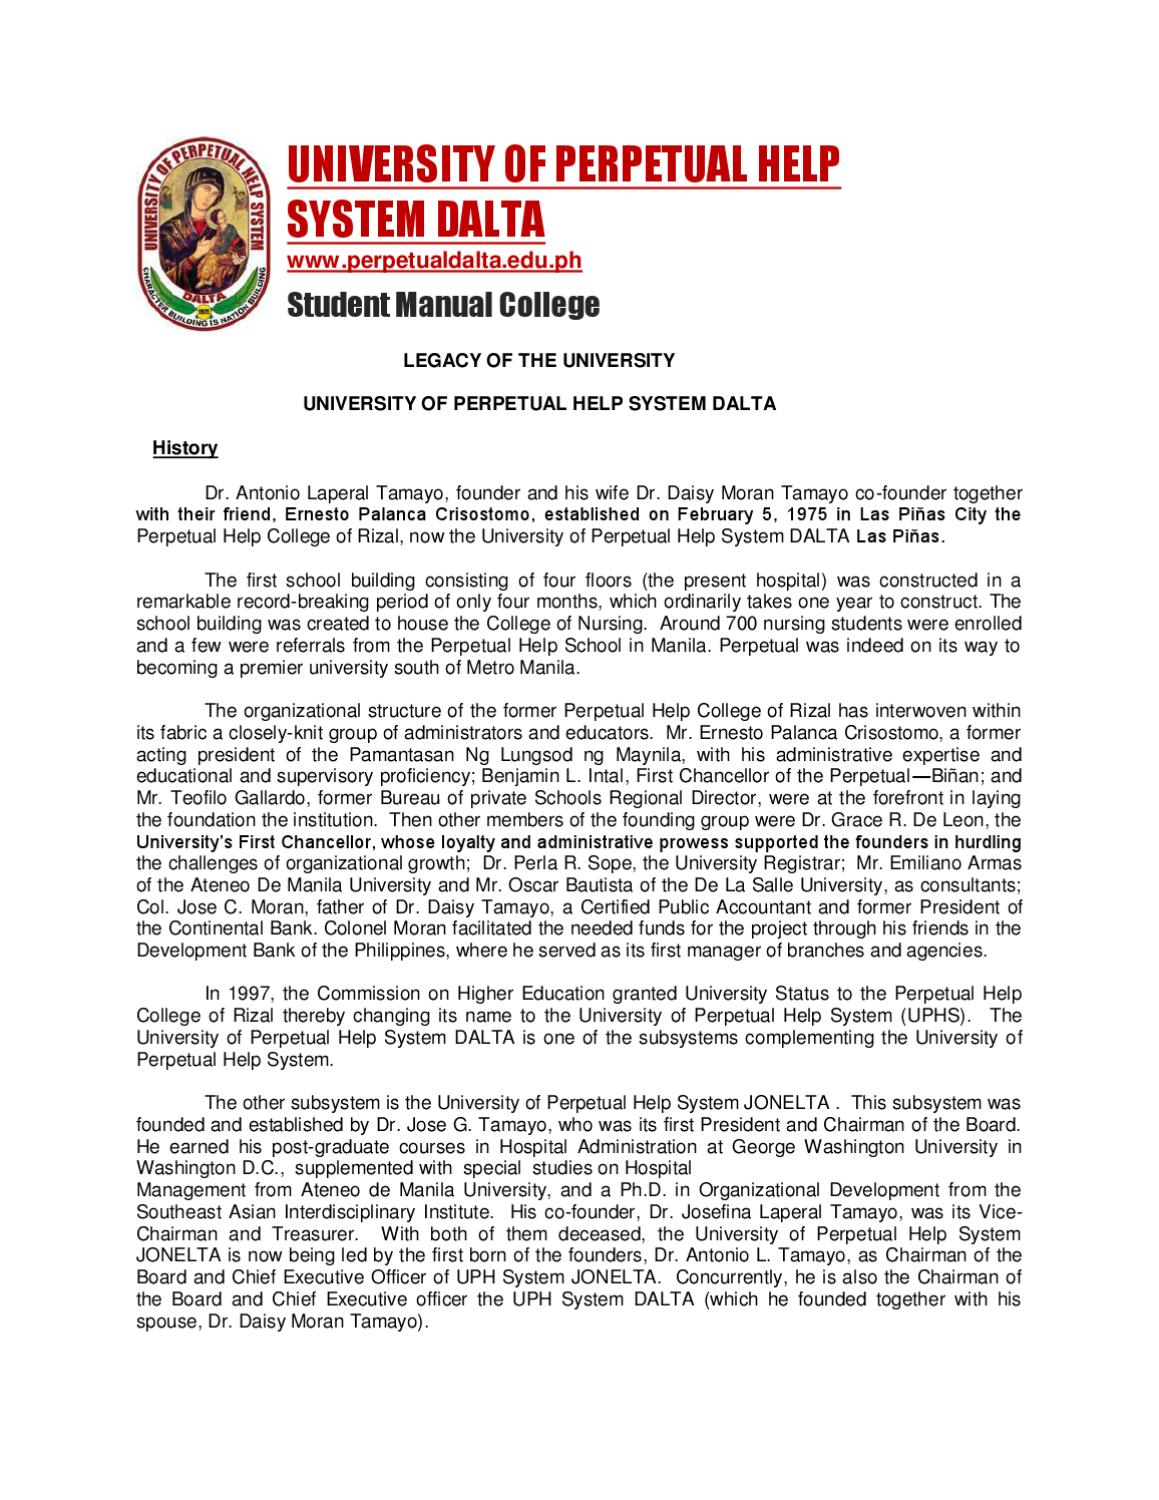 Student Manual for College Students by University of Perpetual Help System  DALTA (UPHSD) - issuu